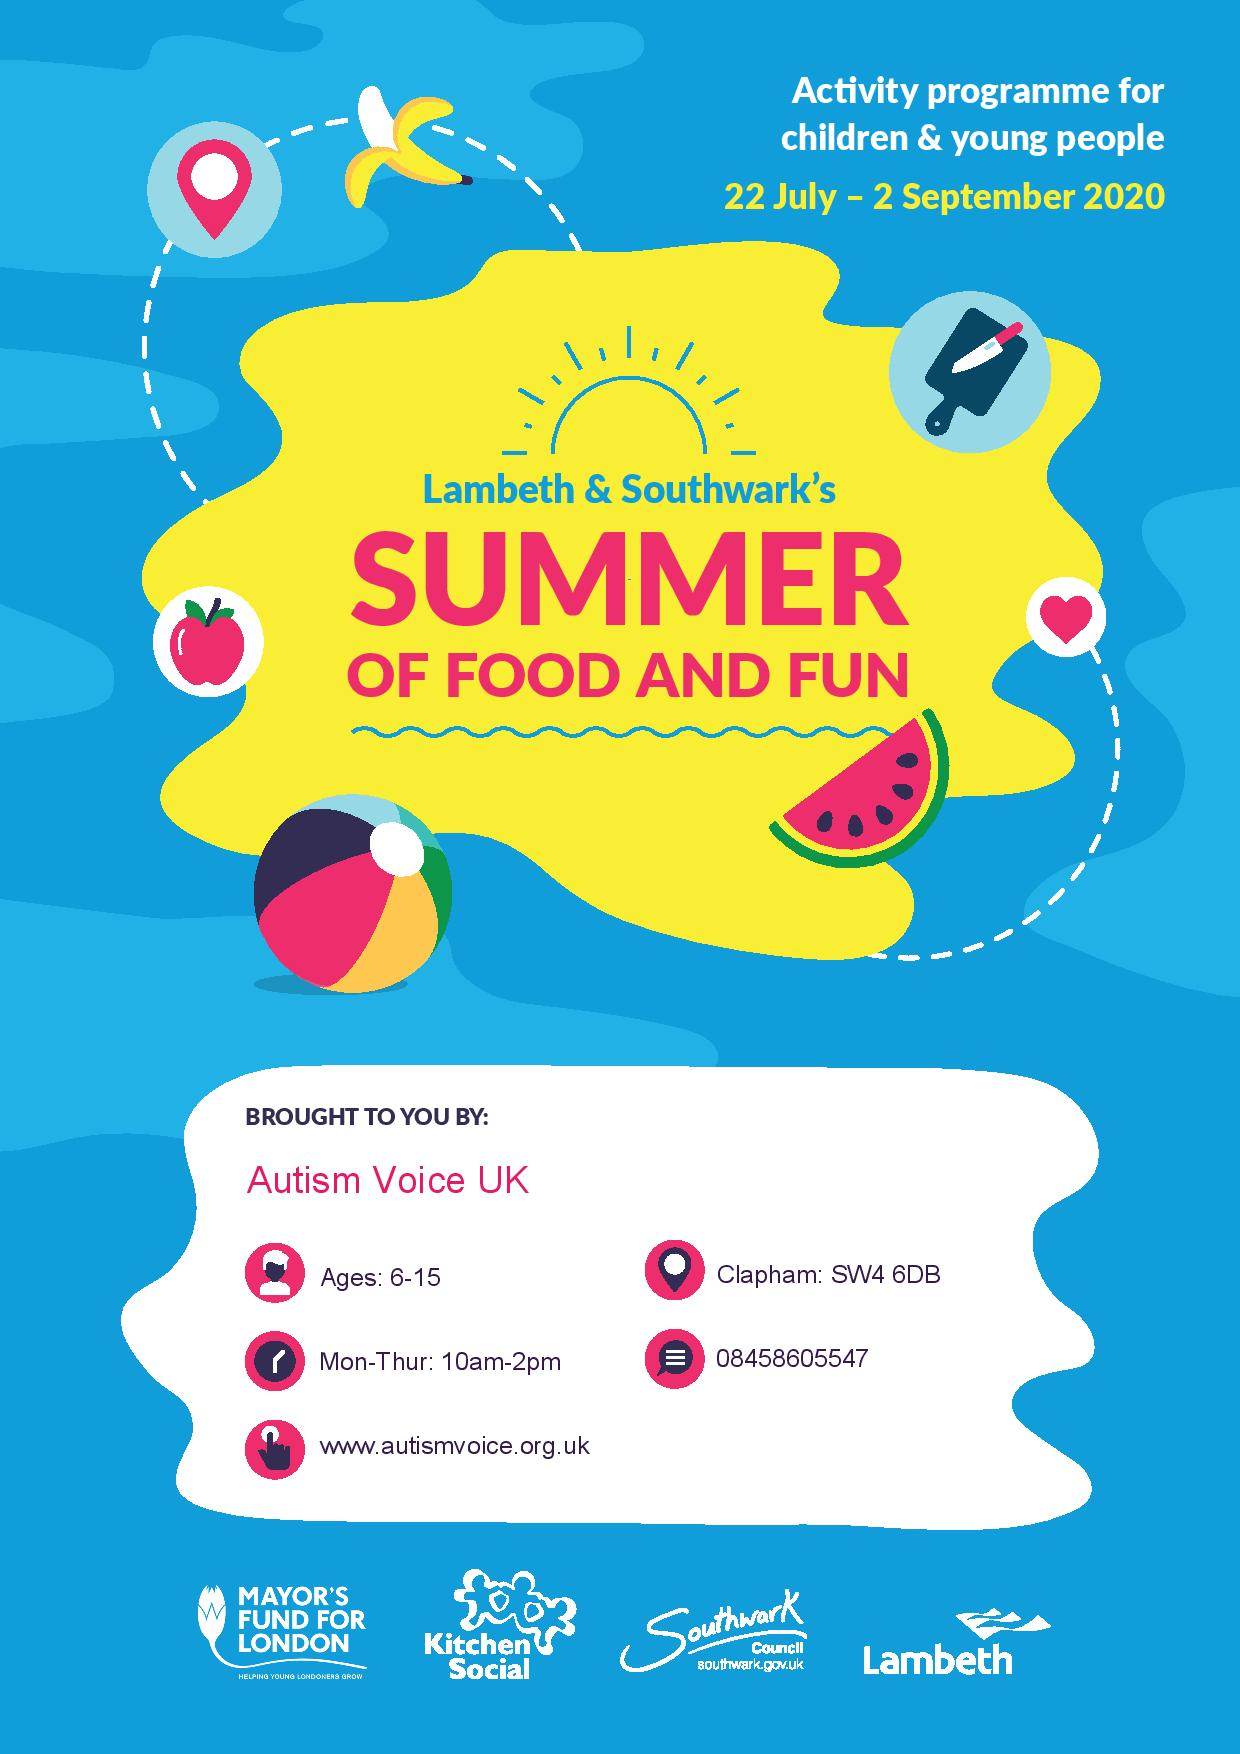 Lambeth & Southwark's Summer Of Food And Fun